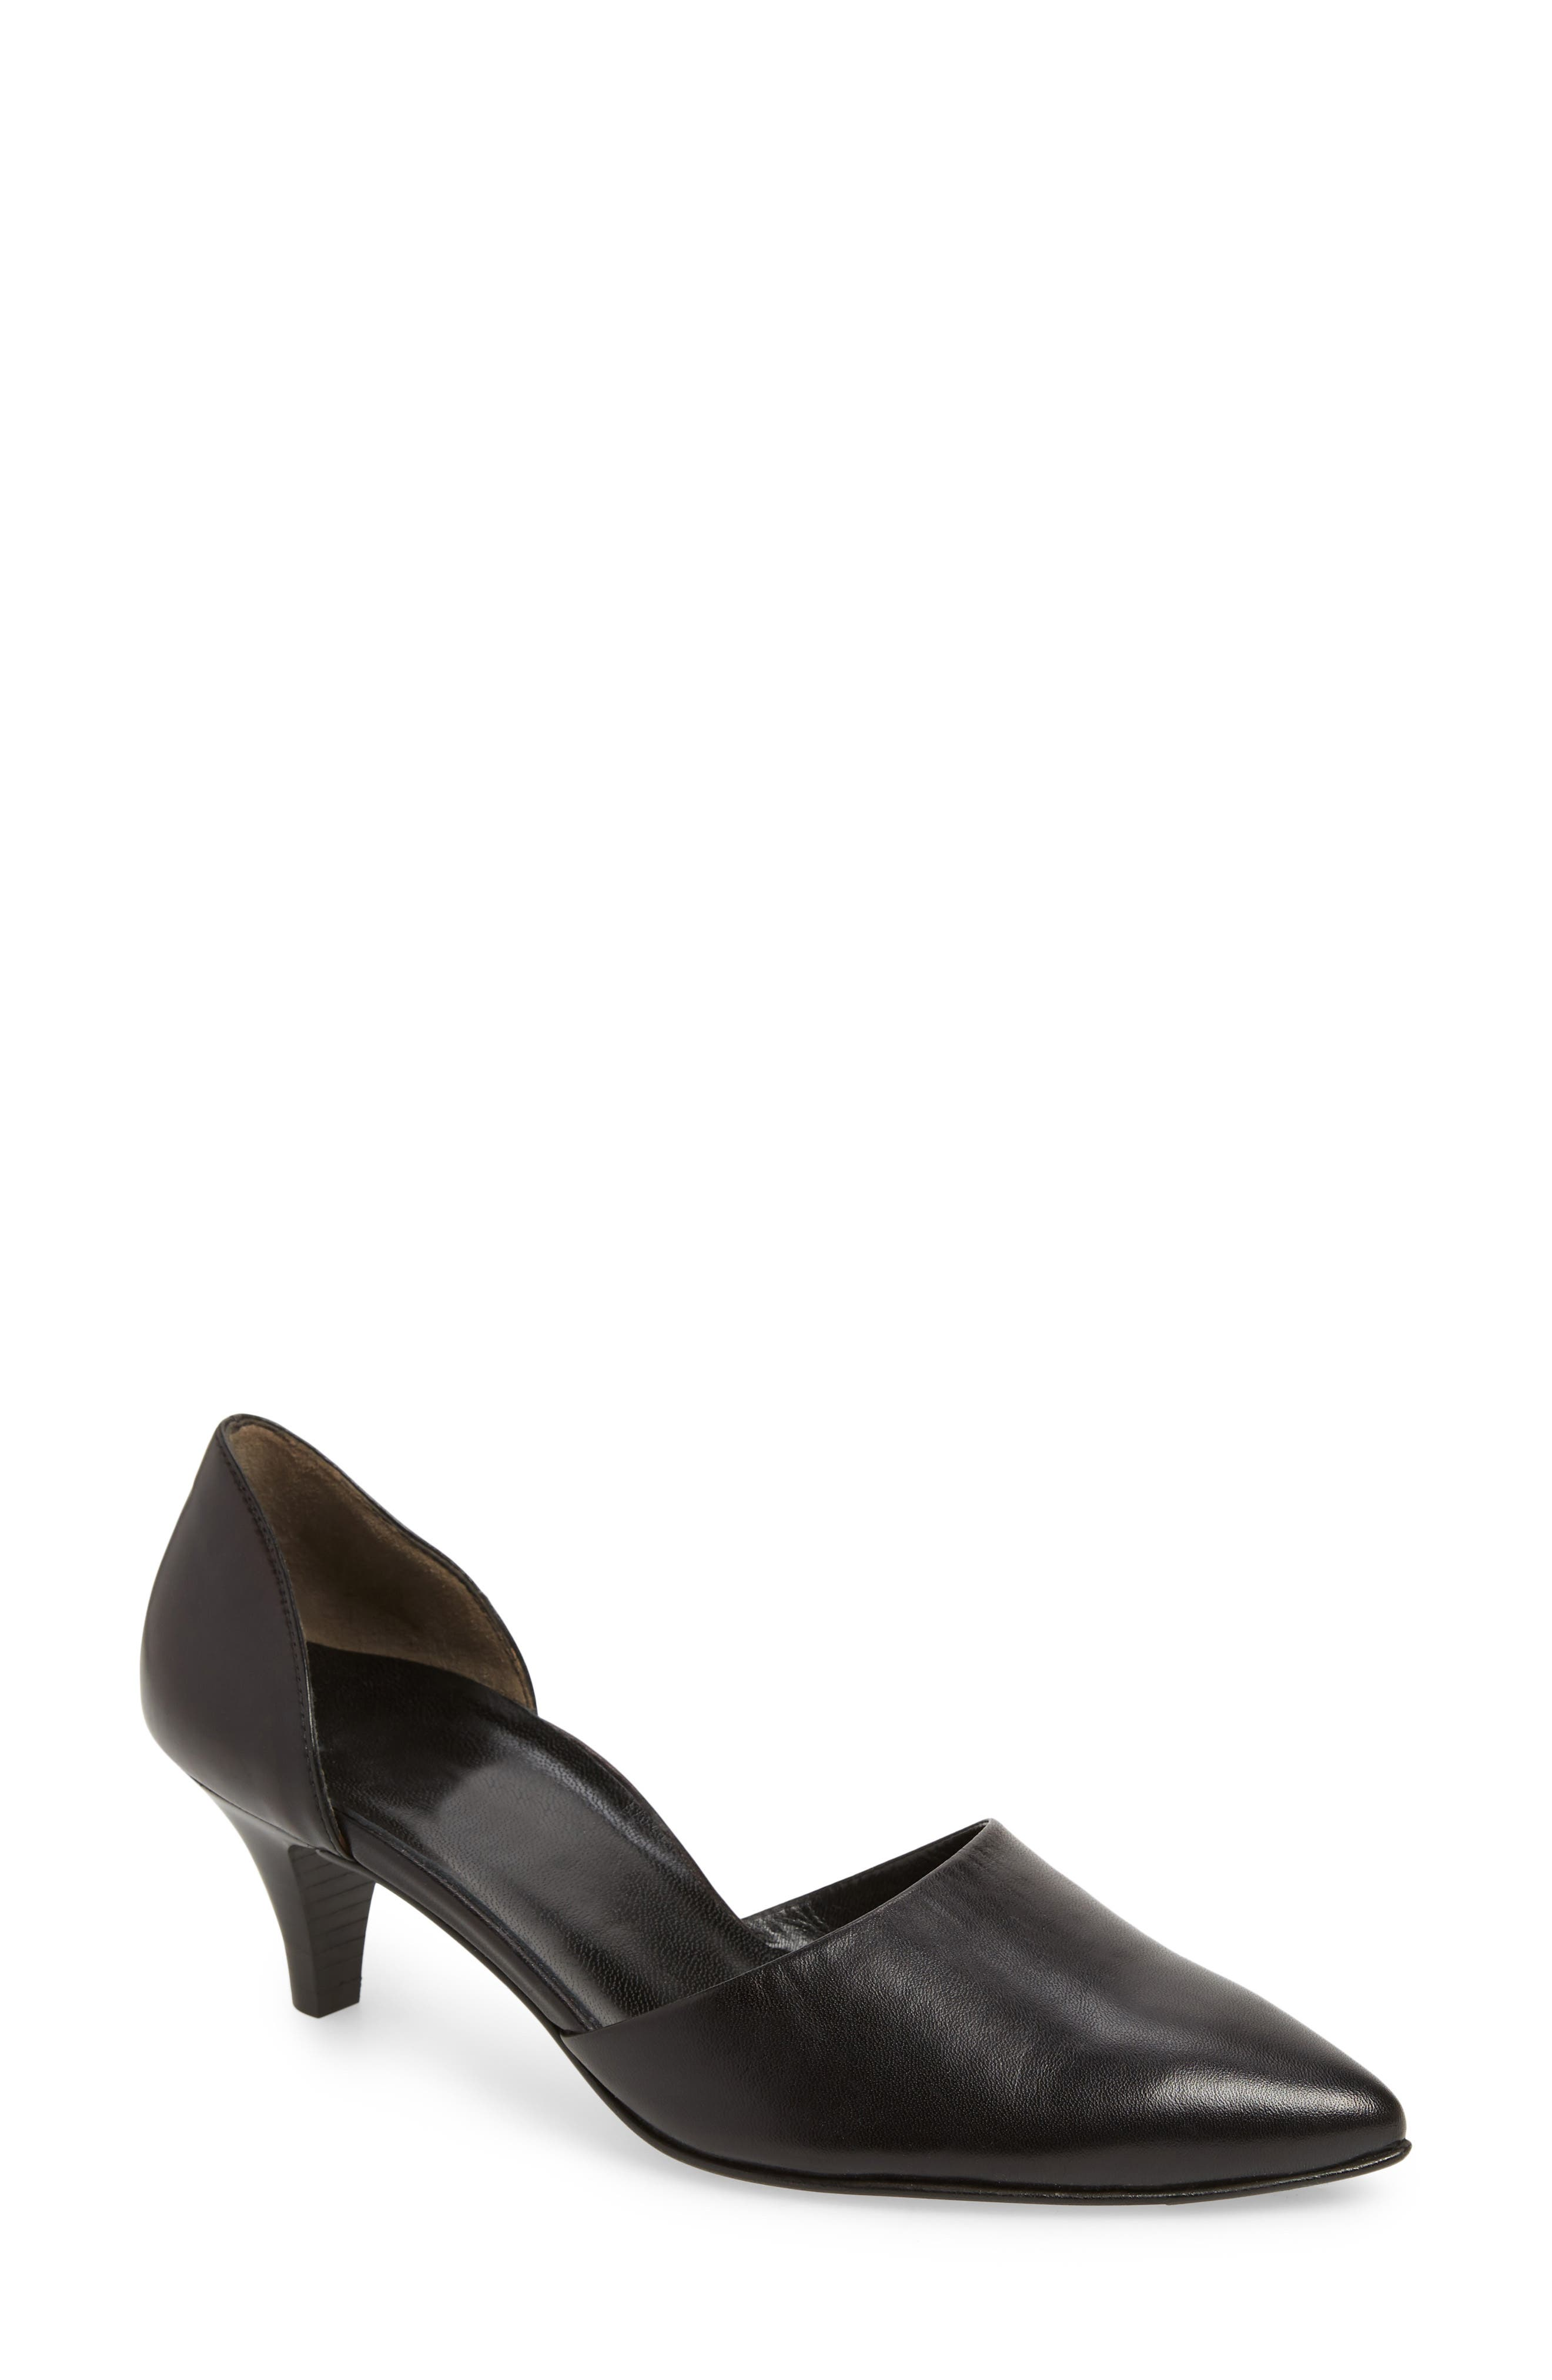 Shey Pointy Toe Pump,                             Main thumbnail 1, color,                             BLACK LEATHER